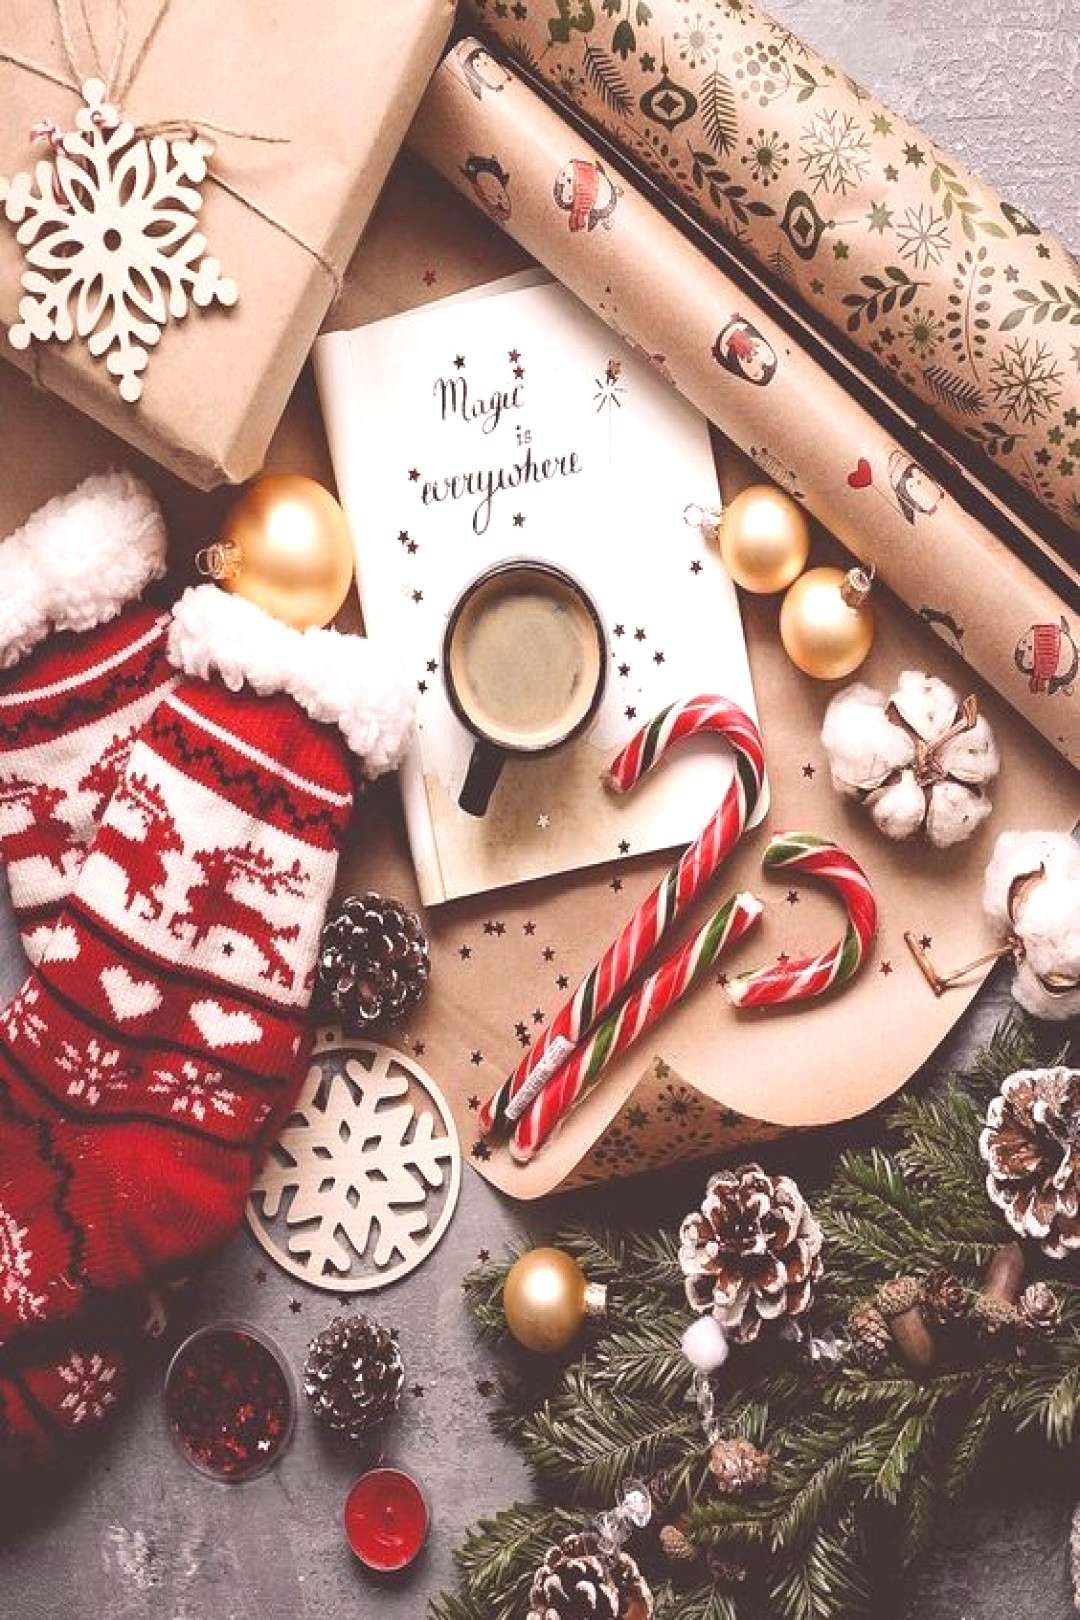 Christmas Aesthetic for Home – Cozy Xmas Decorations Ideas. Looking for inspiration and a great m